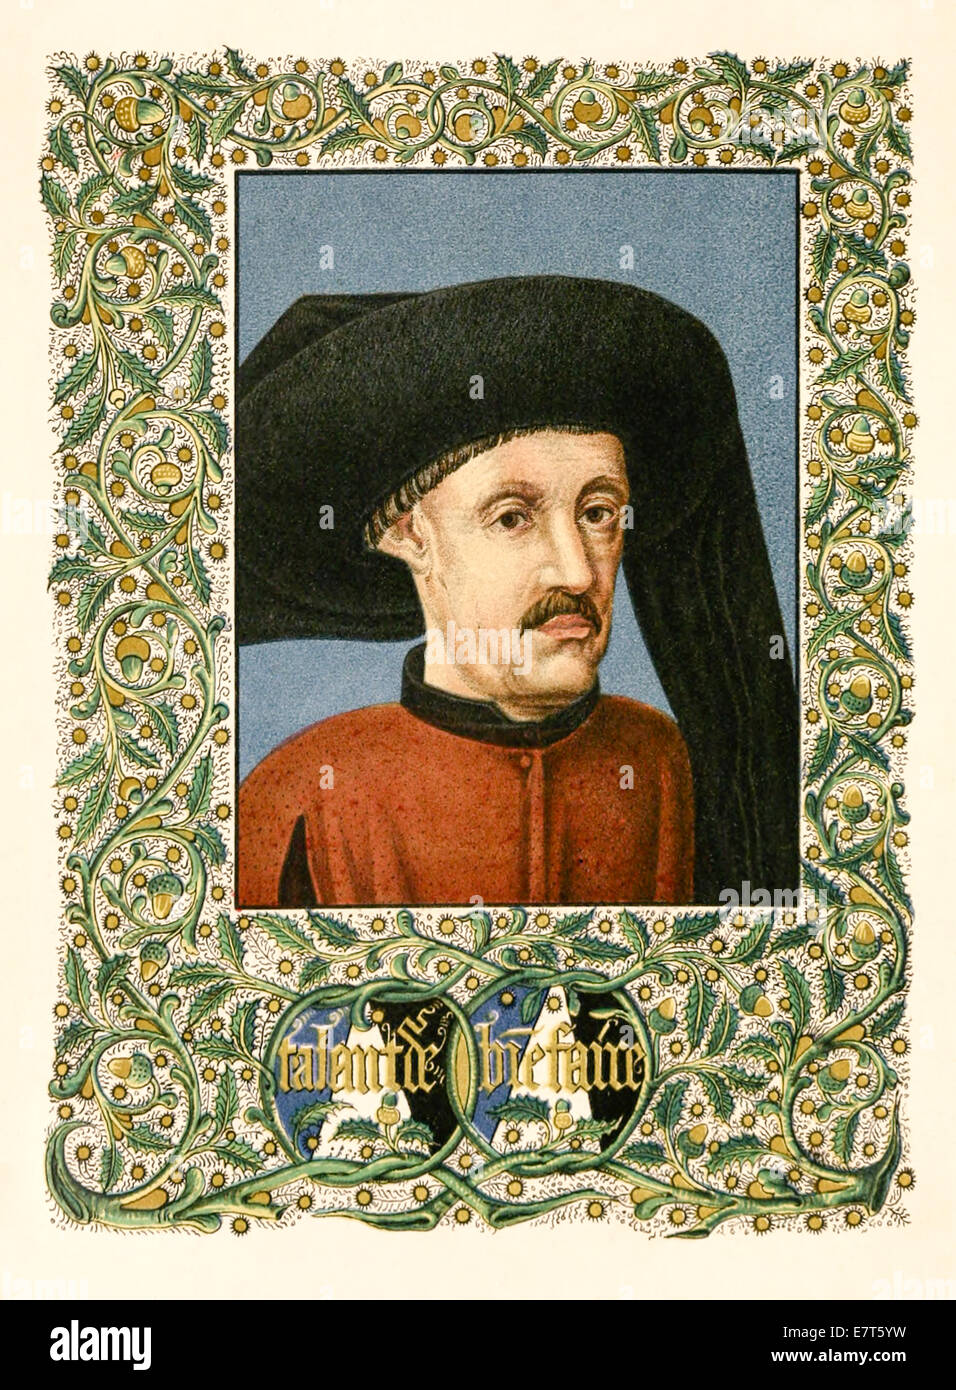 Henry of Portugal (1394-1460), aka 'Henry the Navigator' responsible for Portuguese maritime exploration. - Stock Image